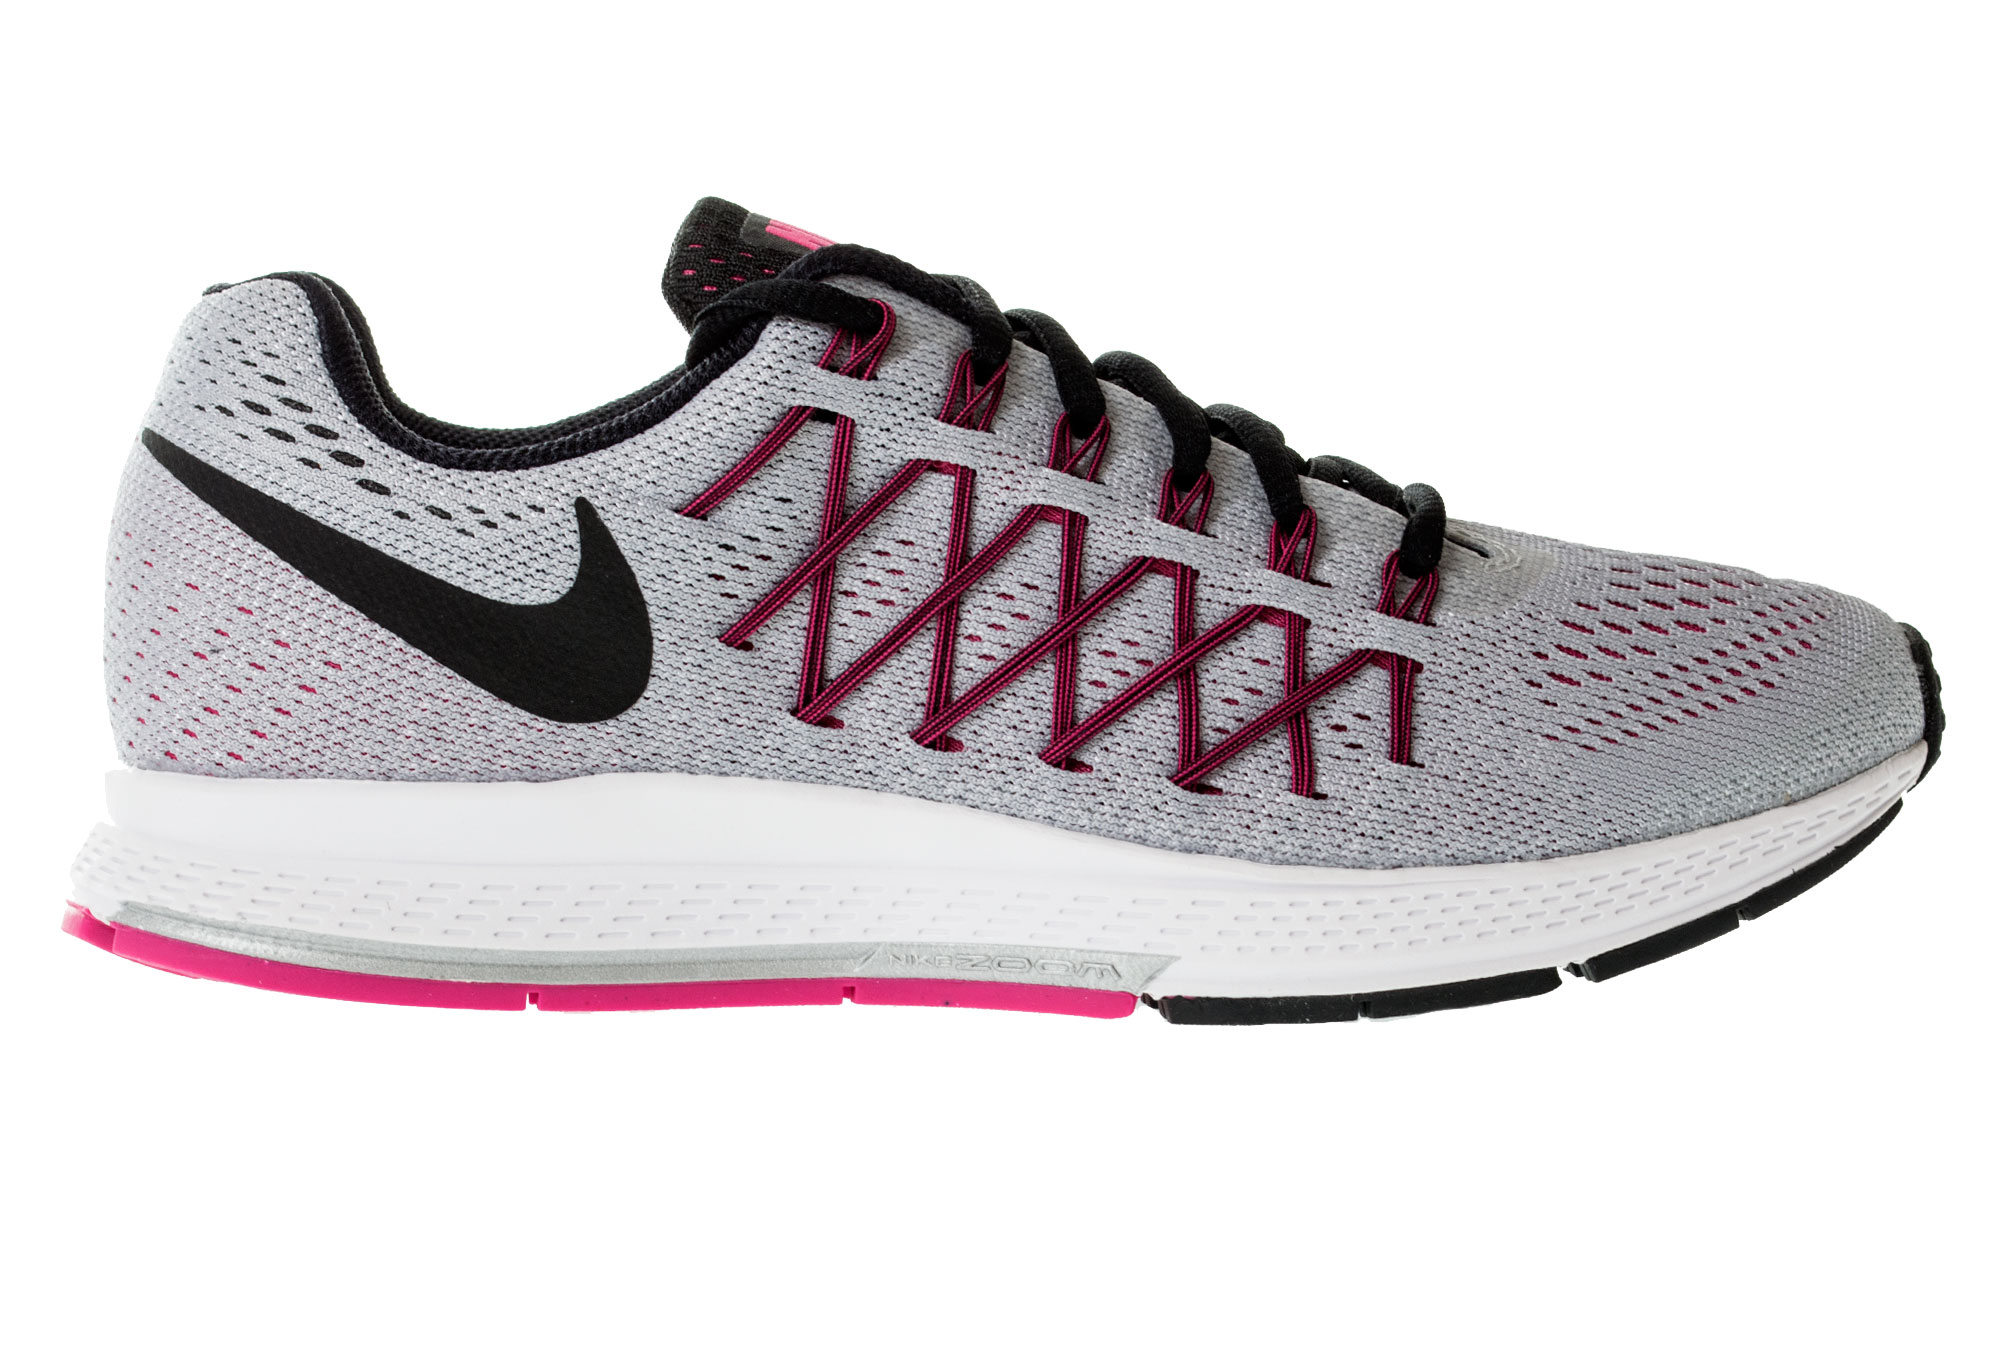 Chaussures de Running Femme Nike Rose AIR ZOOM PEGASUS 32 Gris Rose Nike 7c644c